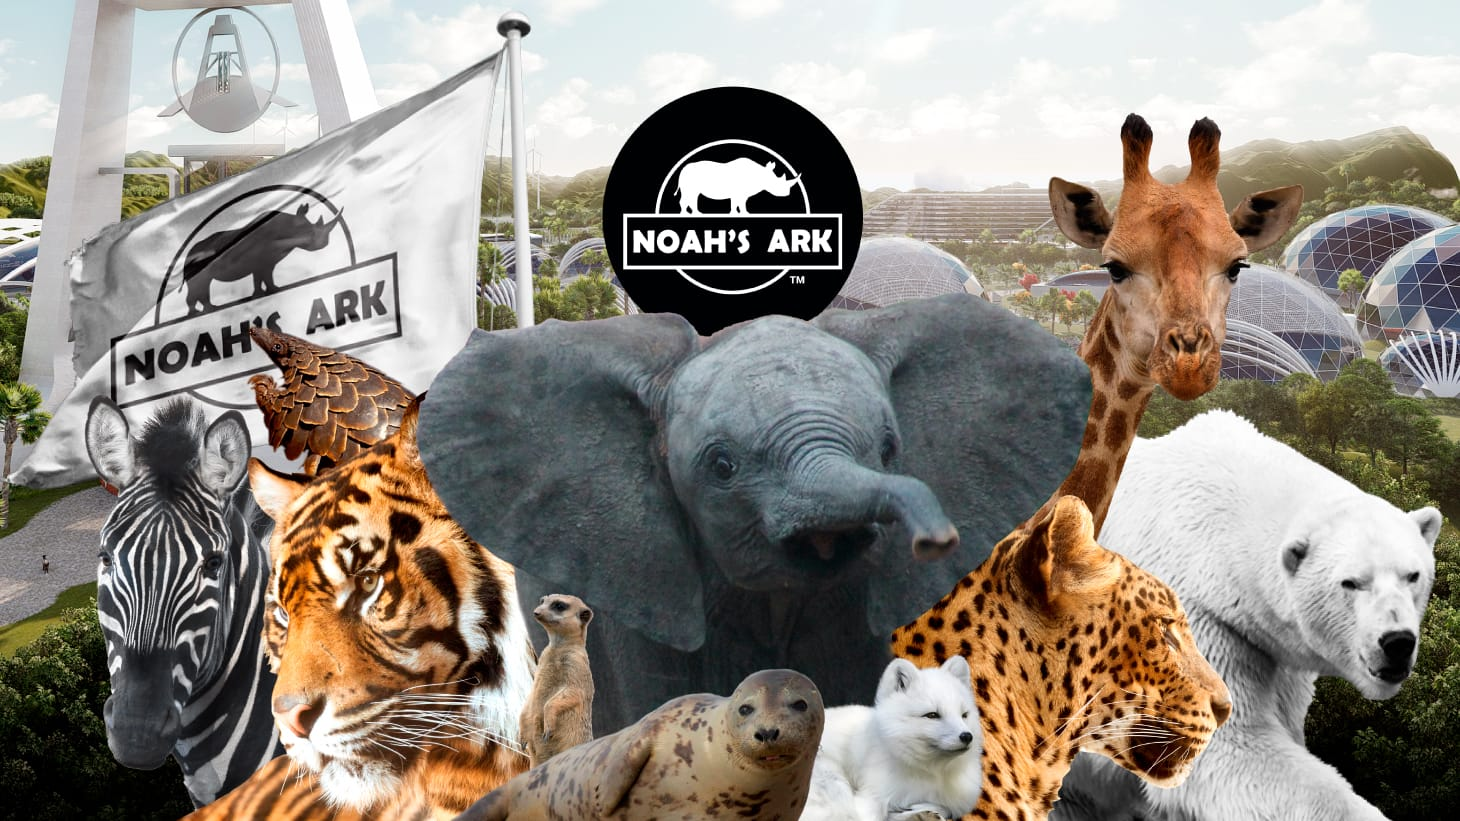 Noah's Ark Africa - Global Conservation and Ecology Park